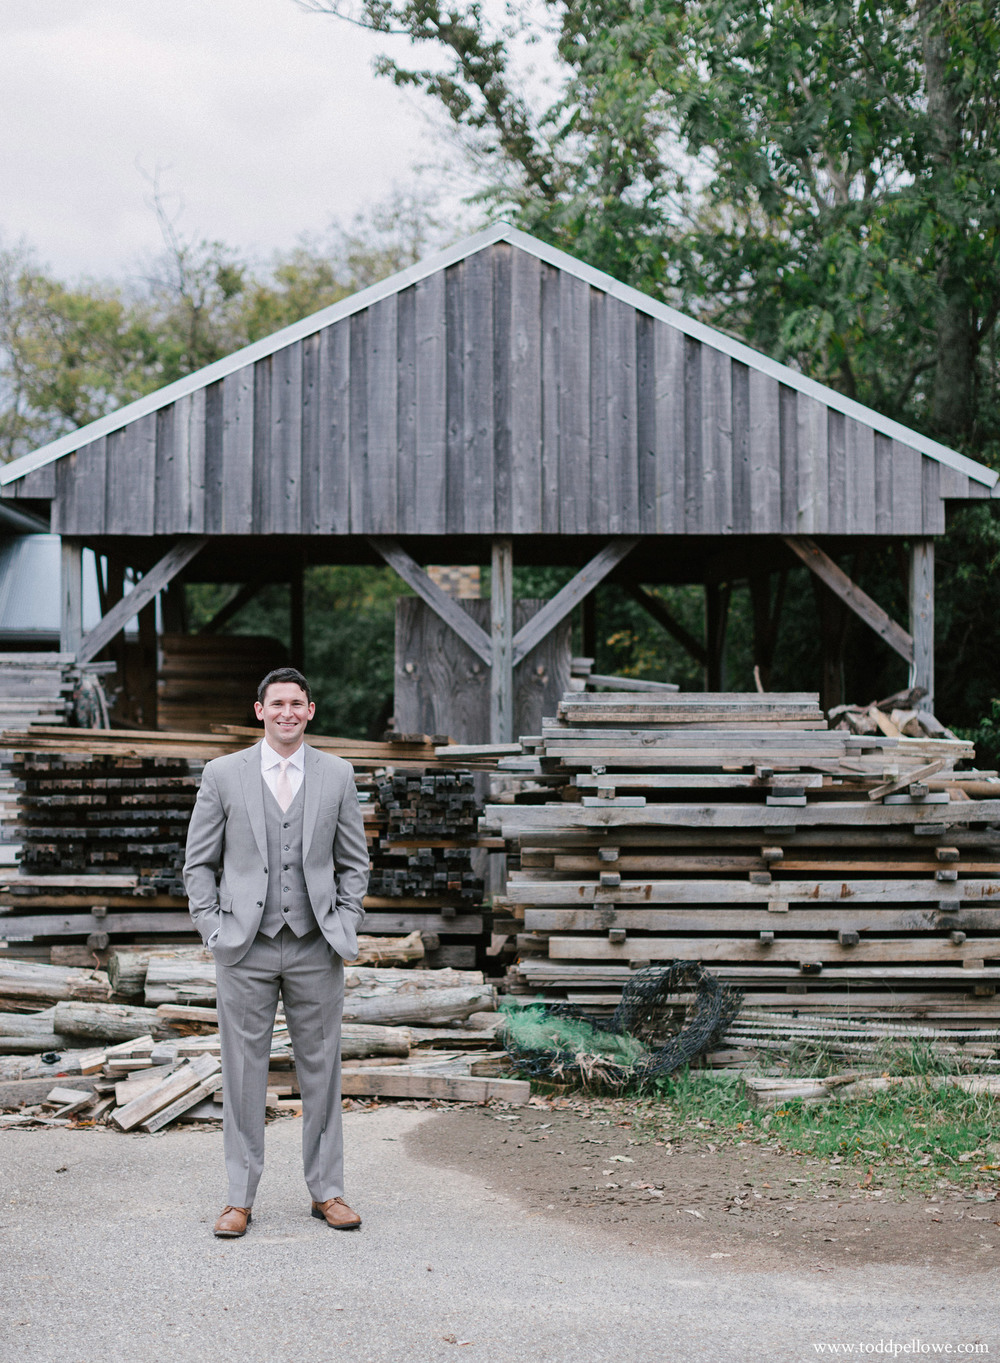 17-foxhollow-farm-kentucky-wedding-212.jpg